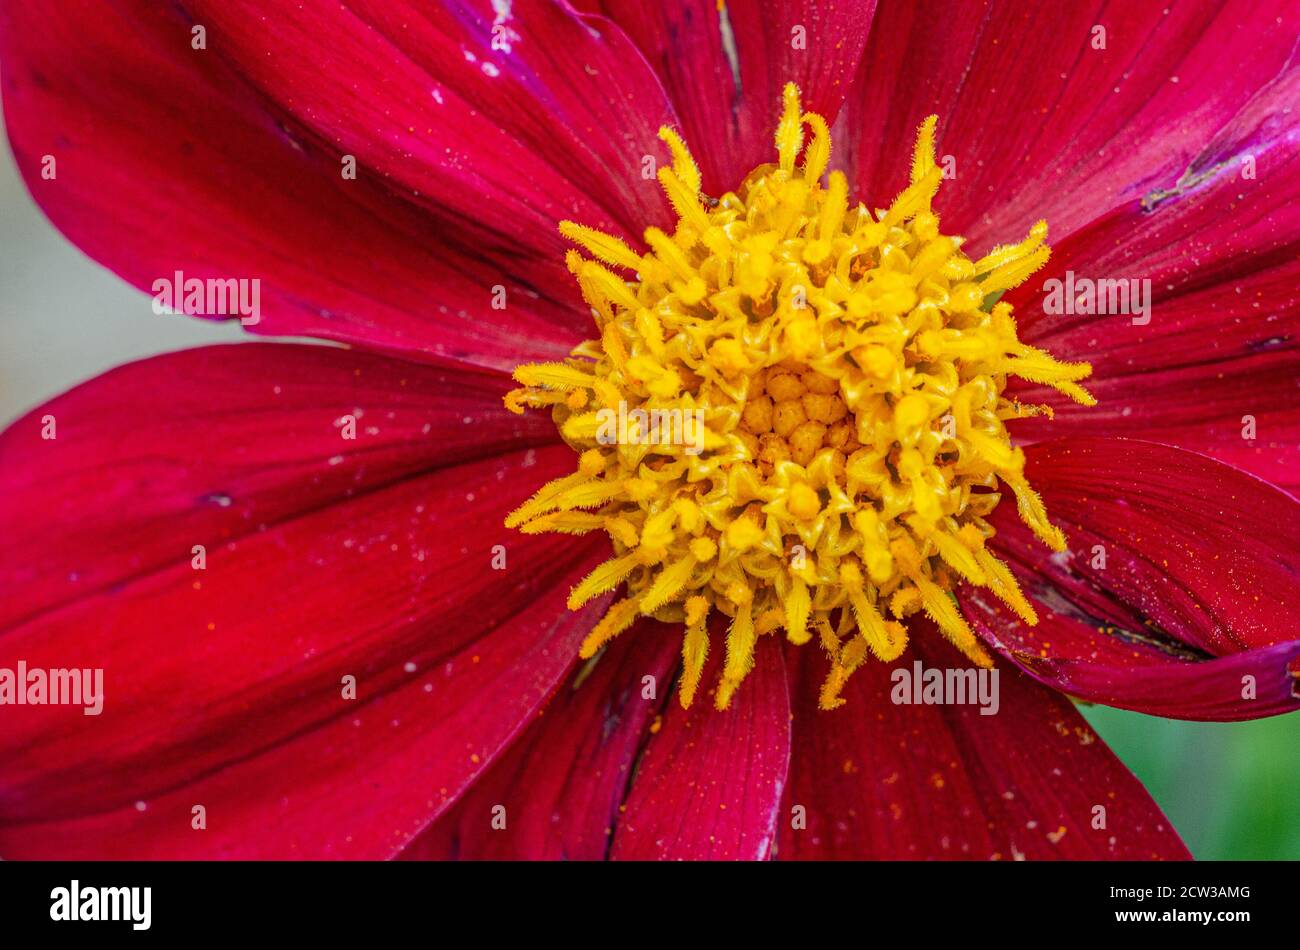 close-up-view-of-a-red-dahlia-flower-with-yellow-pollen-2CW3AMG.jpg